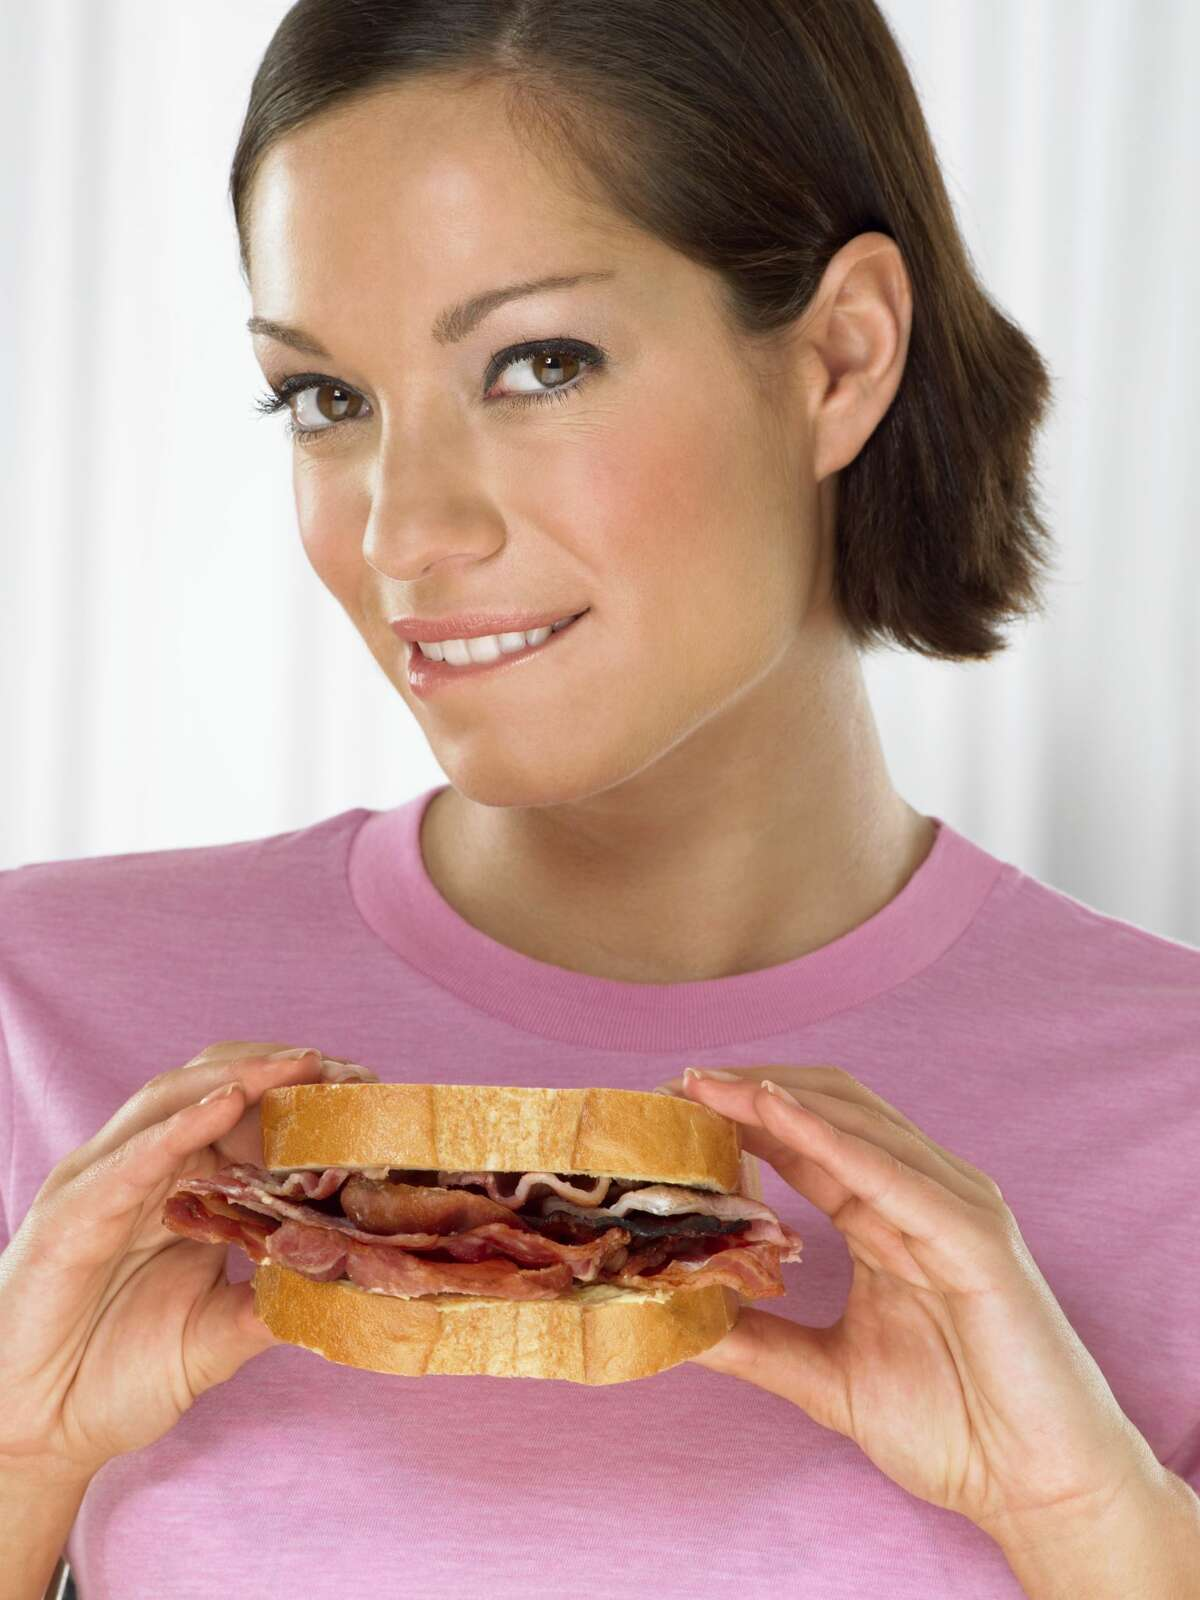 21 percent of Americans say they would eat bacon every day for the rest of their life. We'd like to know if they have health insurance. Source: NationalToday.com